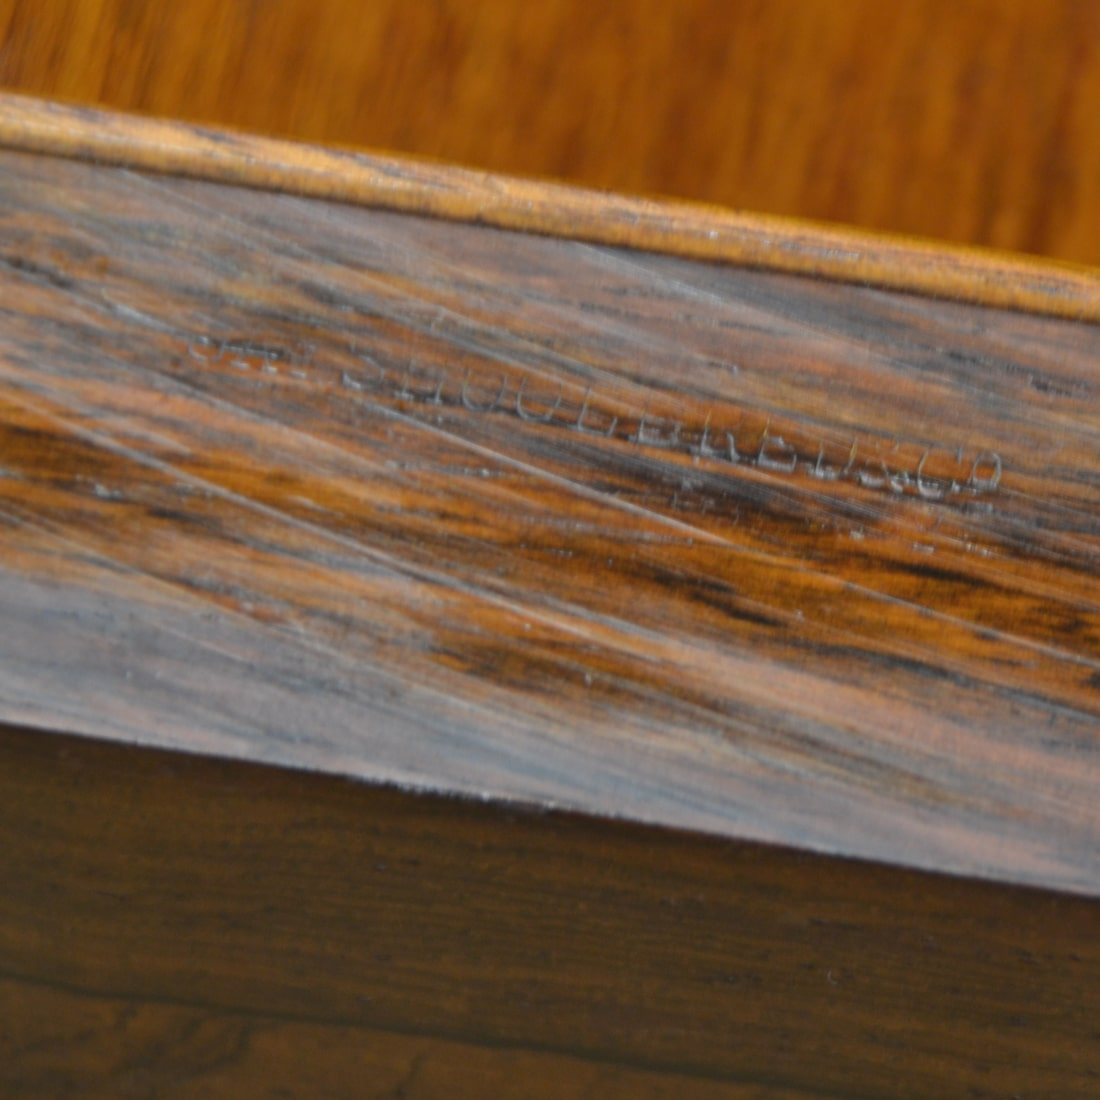 embossed stamp on the edge of the games table